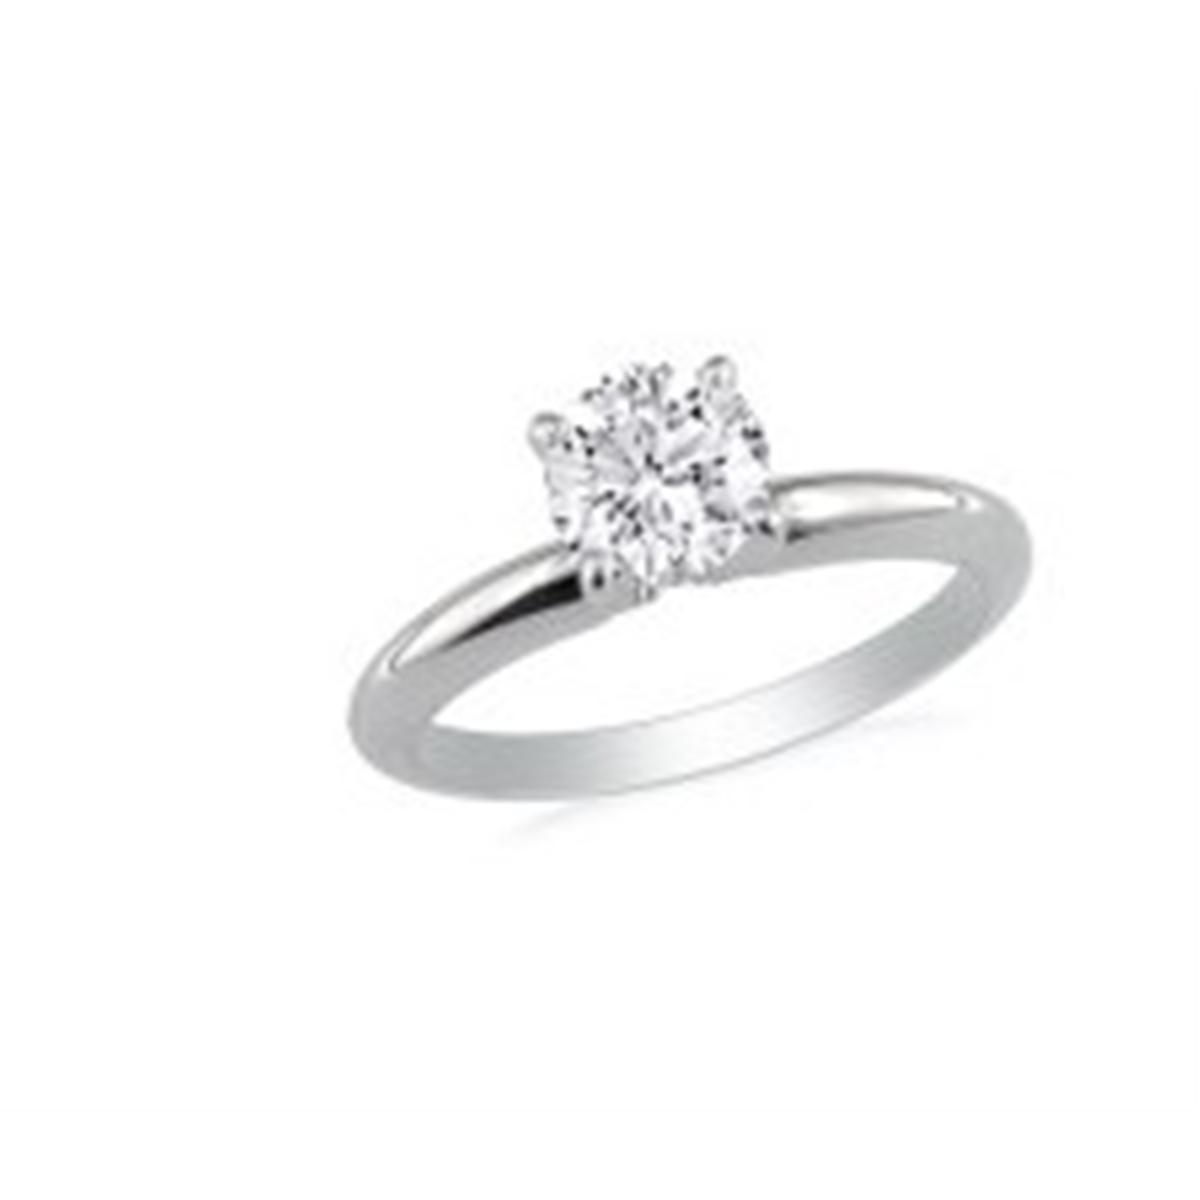 ring rings white gold wedding price list low engagement range philippines diamond